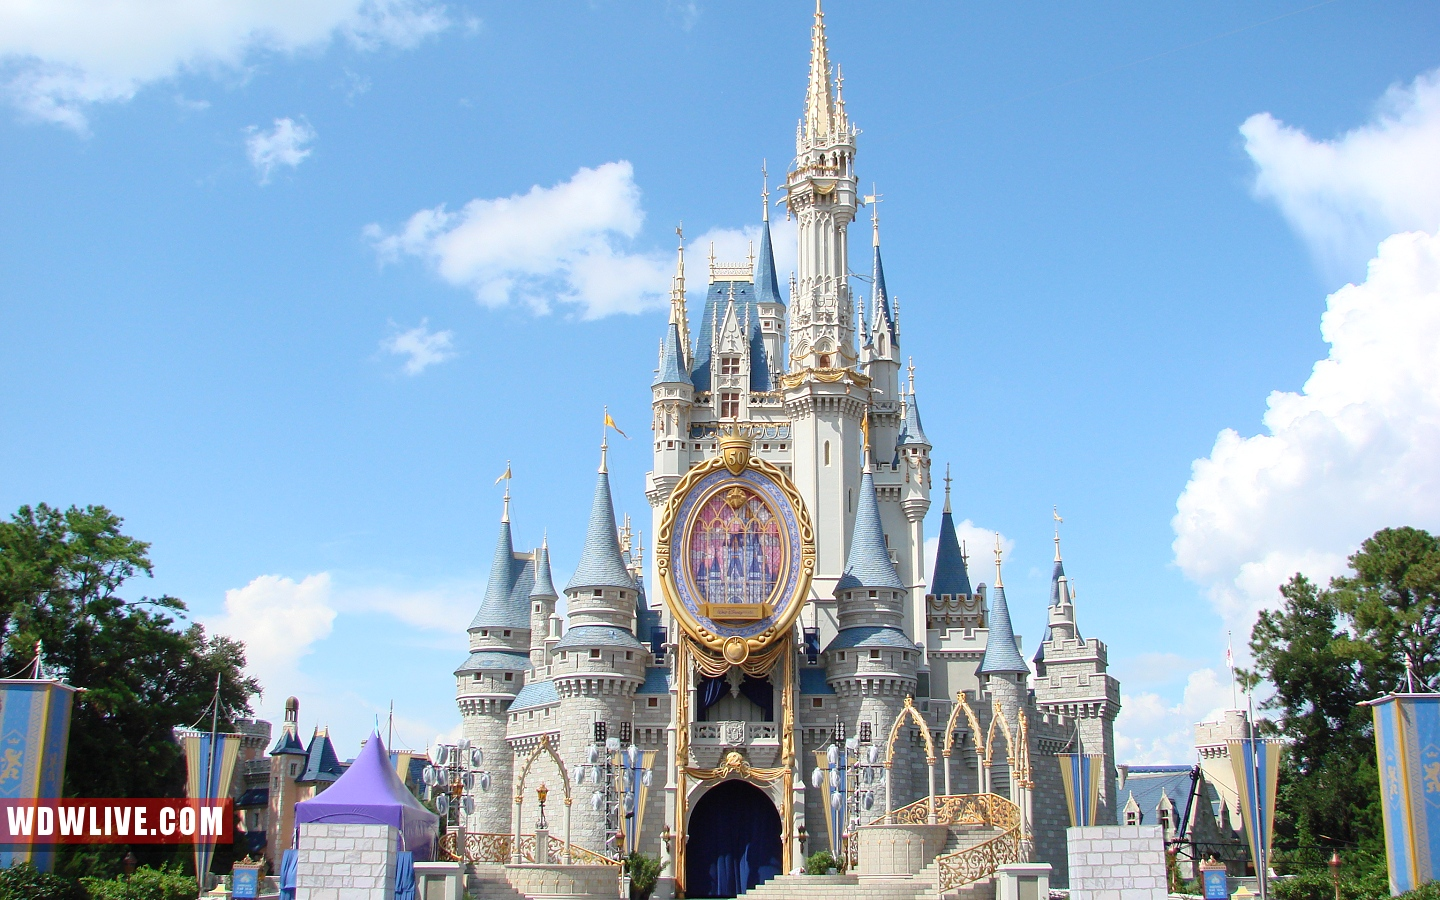 Disney World Castle Desktop Wallpaper Images Pictures   Becuo 1440x900